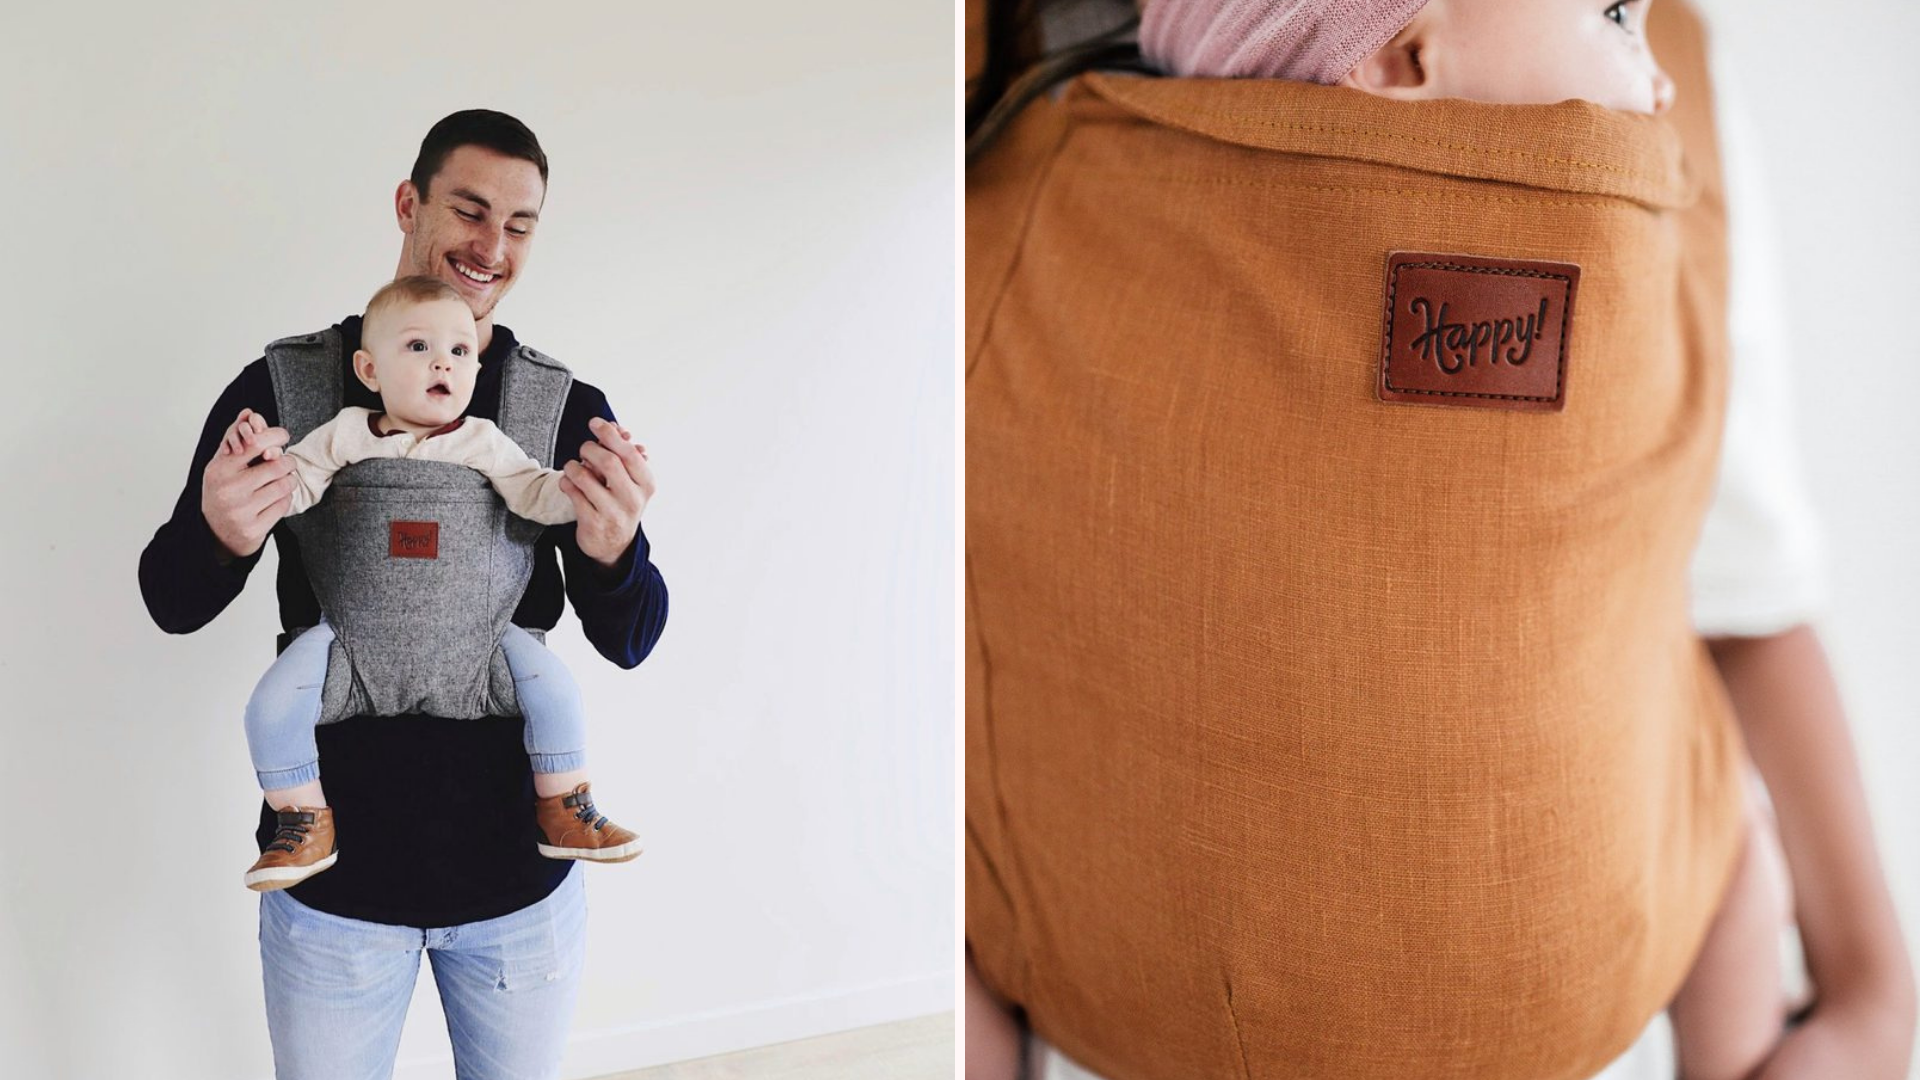 Man carrying a child in the Happy! baby carrier and a close up of the Happy! product label on the carrier.